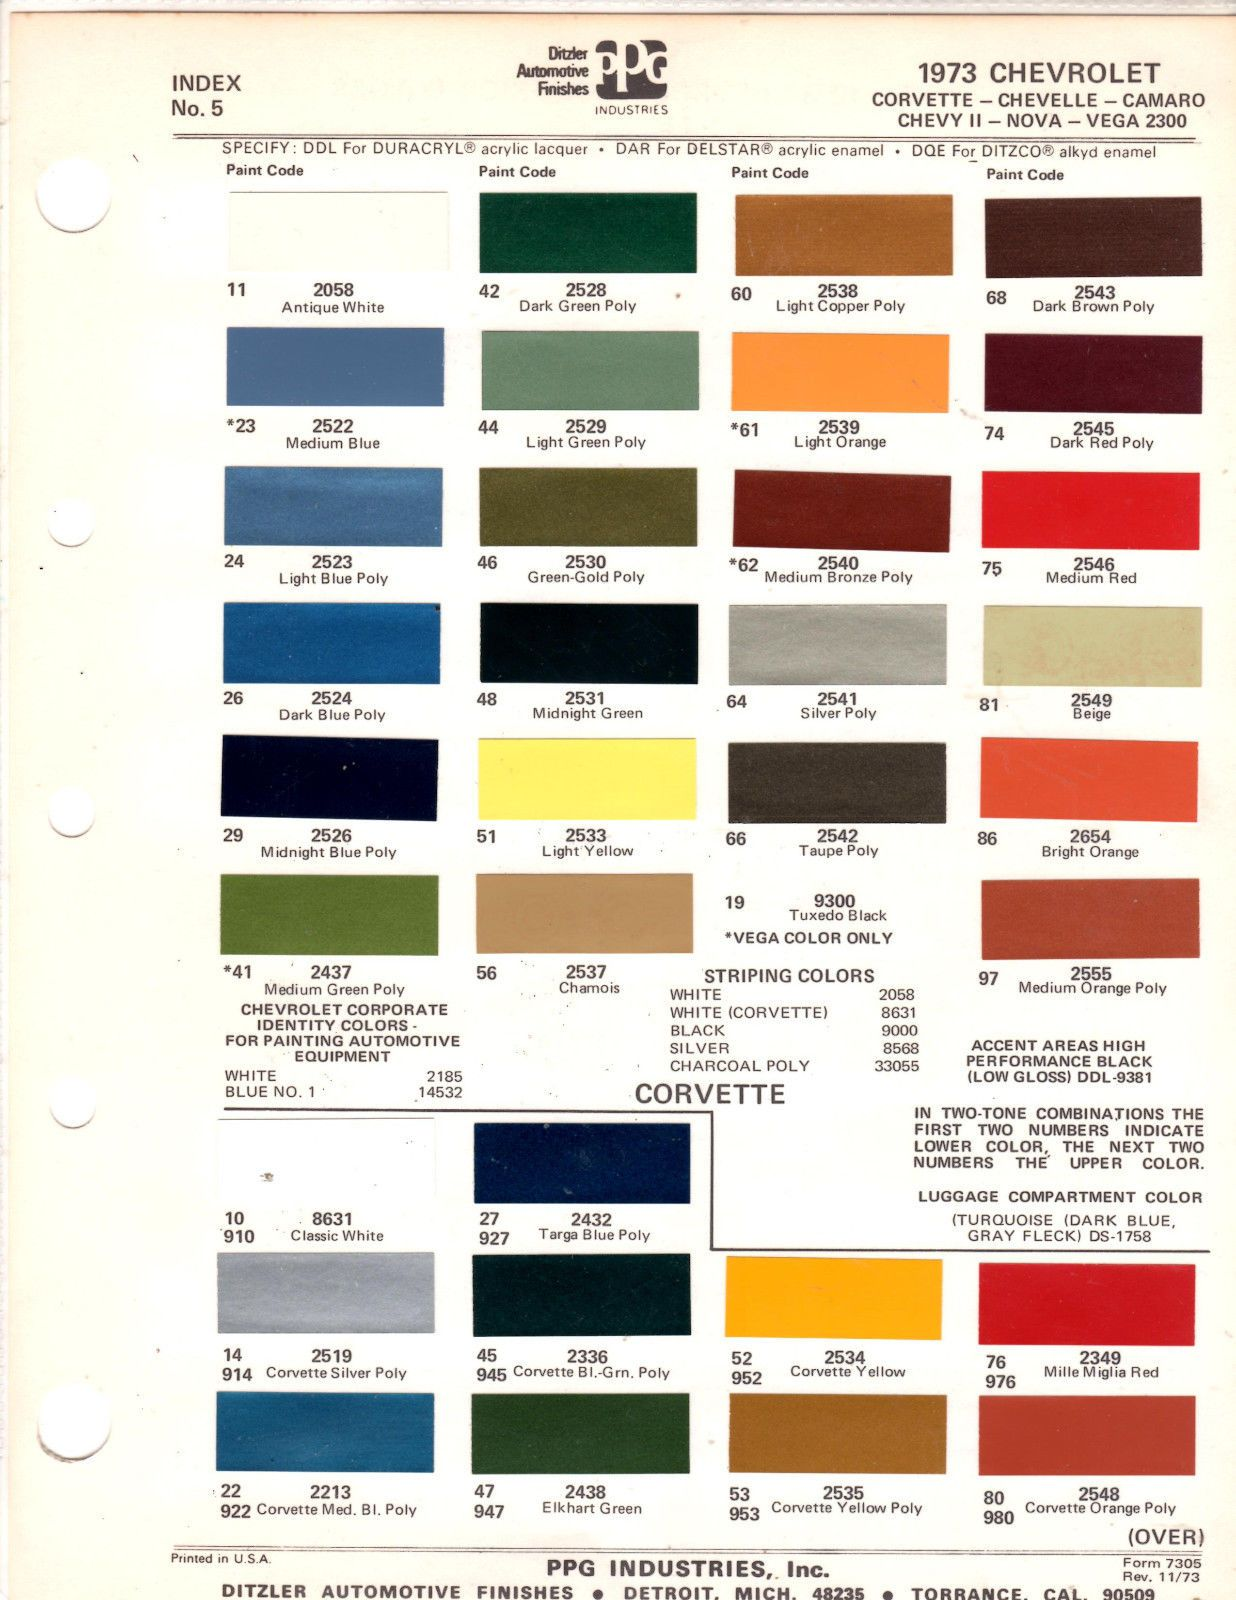 1973 chevrolet corvette camaro chevelle caprice impala color chart for car paint 1973 chevrolet camaro geenschuldenfo Image collections